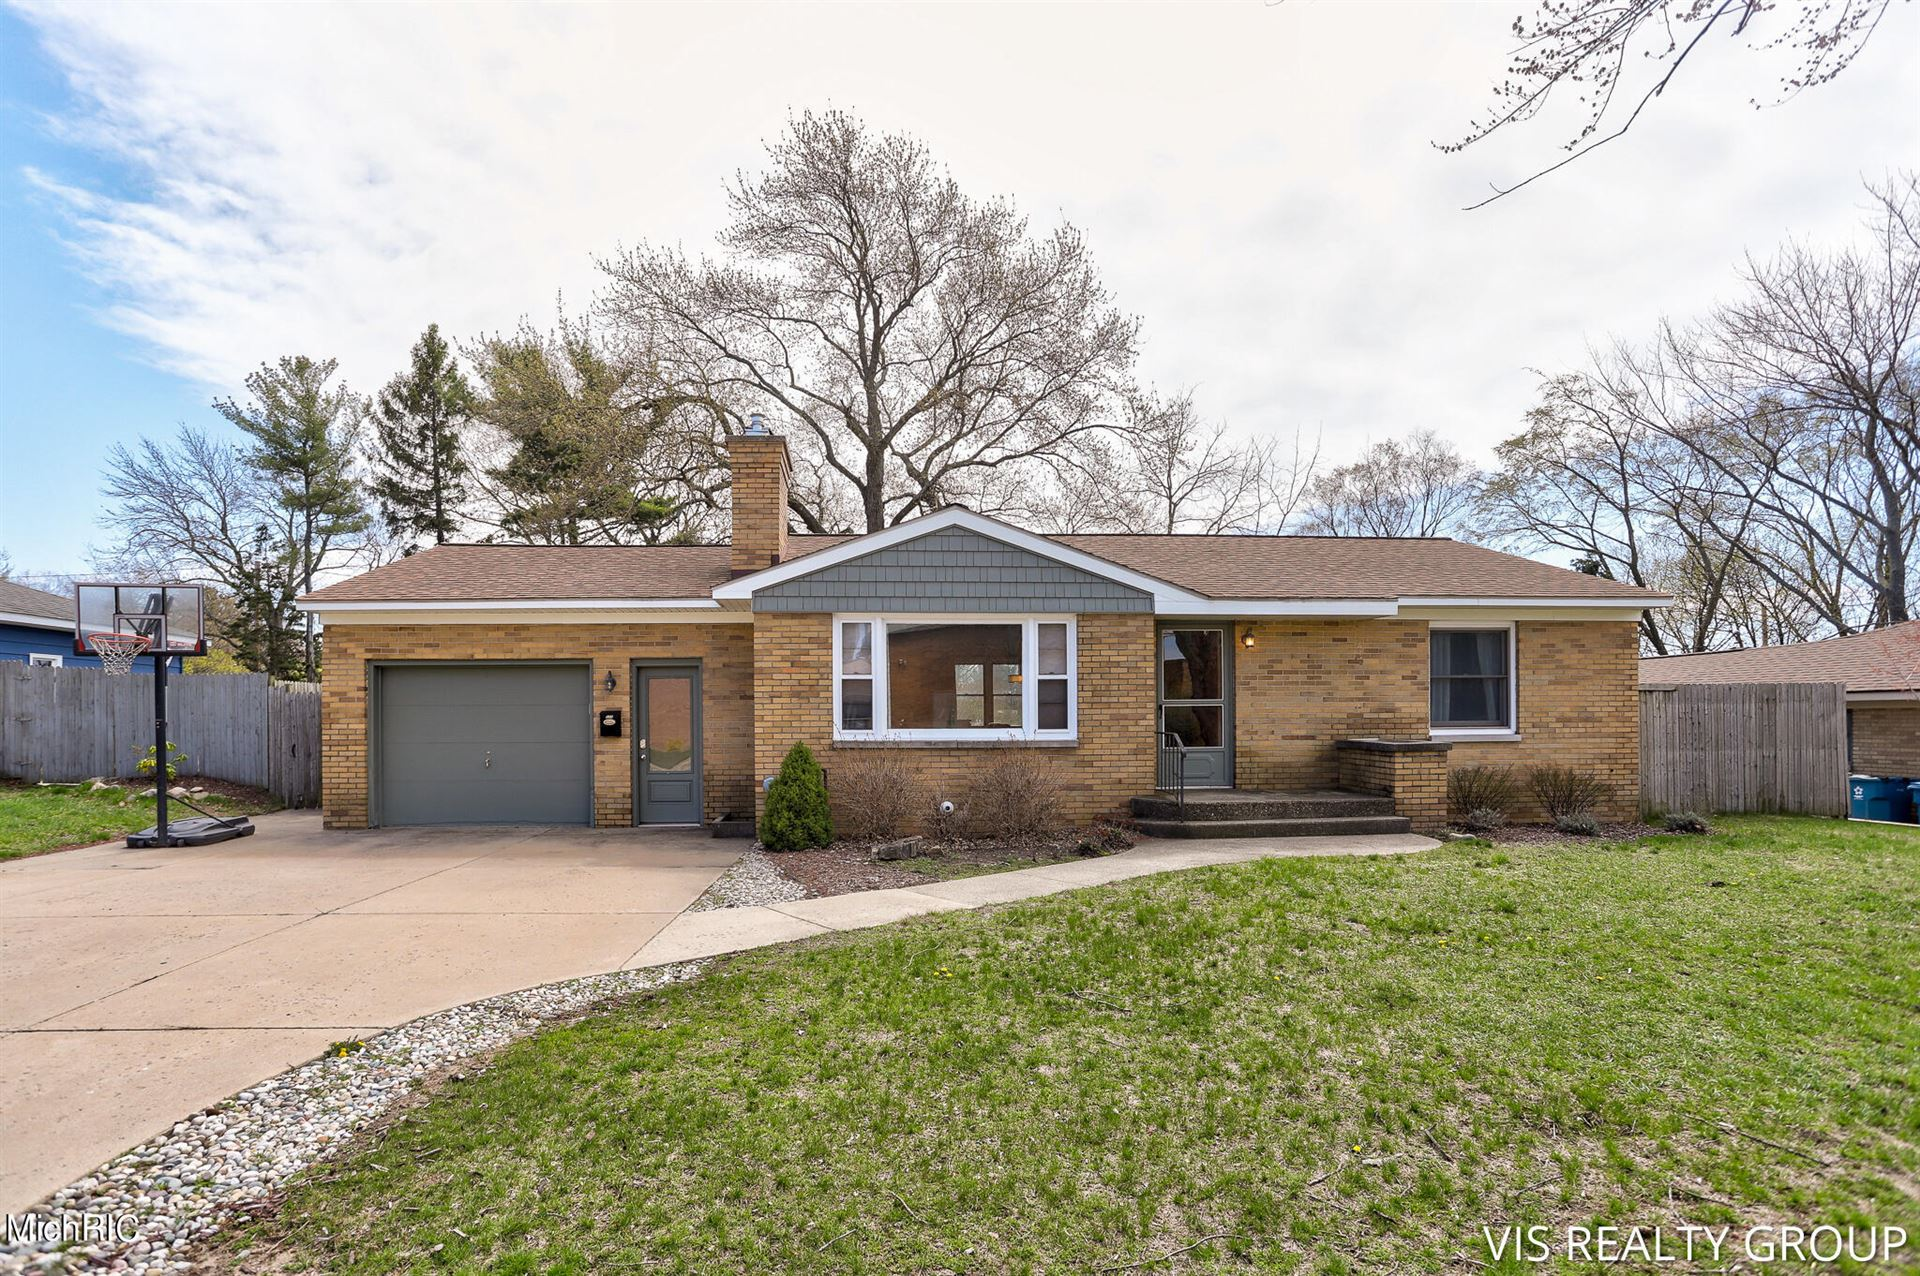 520 Taylor Avenue, Grand Haven, MI 49417 - MLS#: 21012489